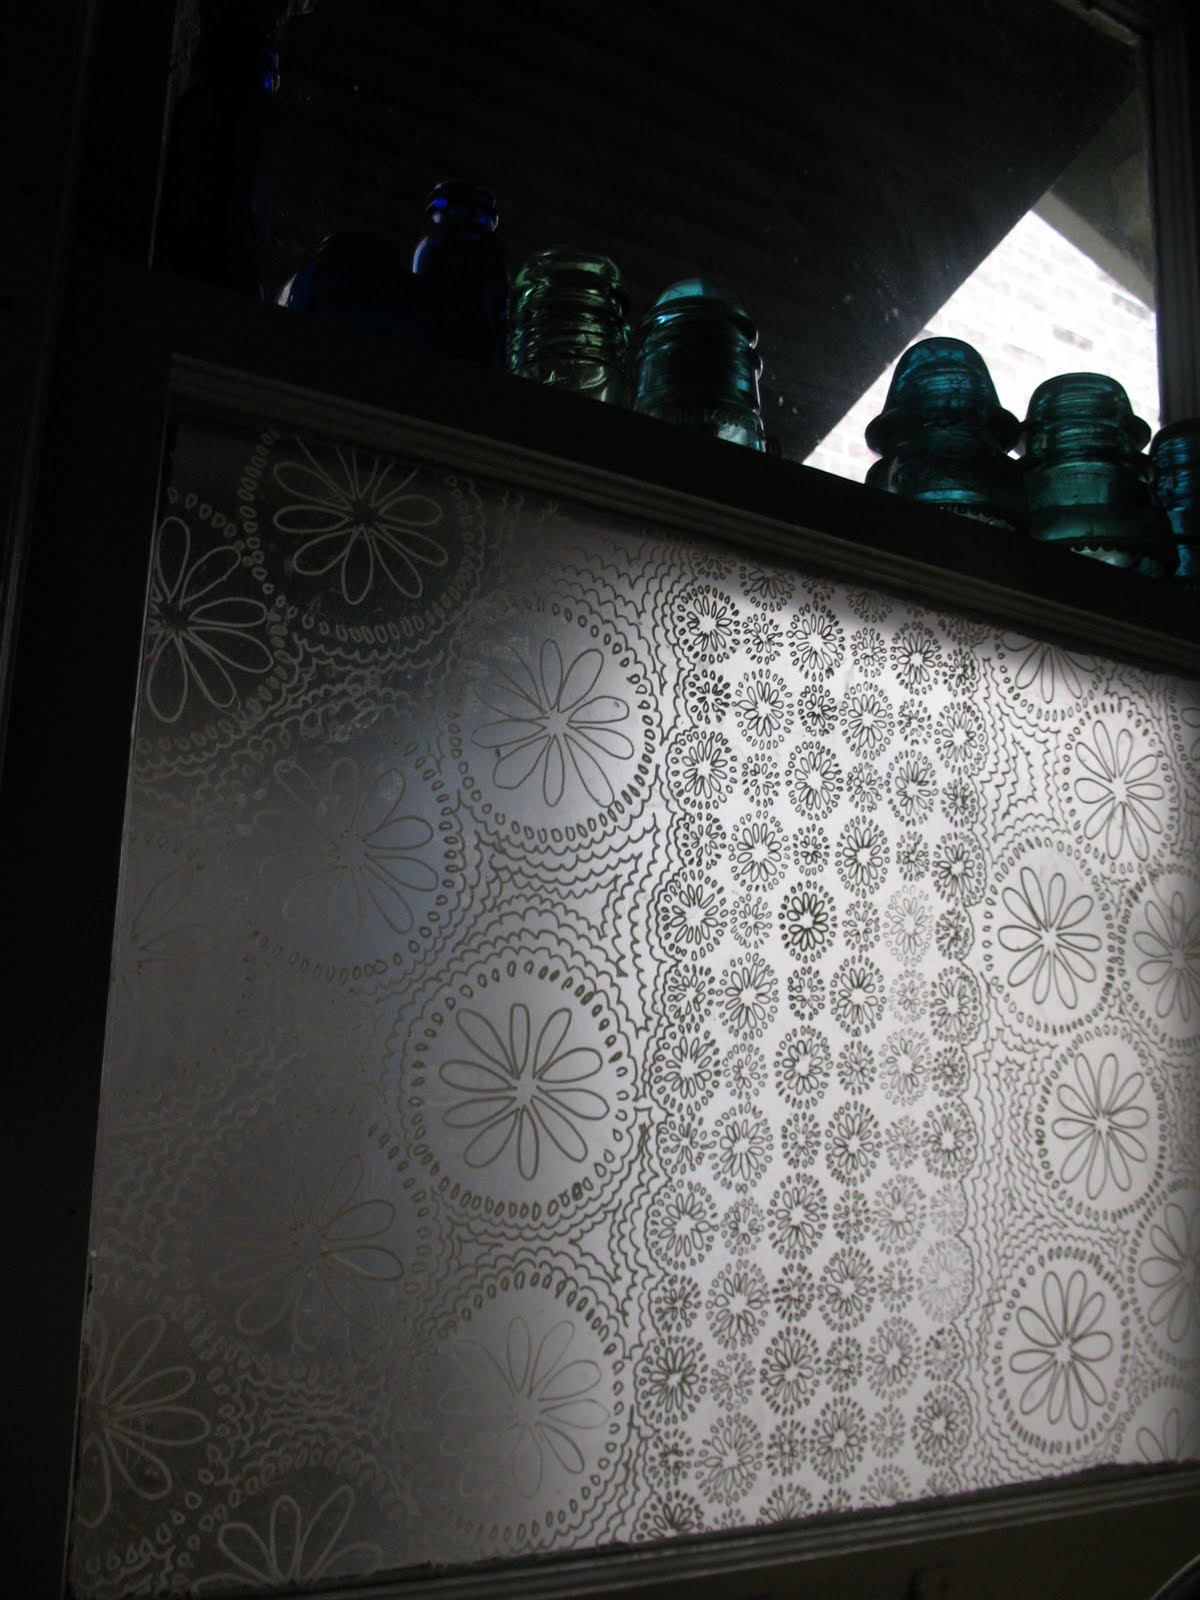 How Do I Get Paint Off Textured Glass